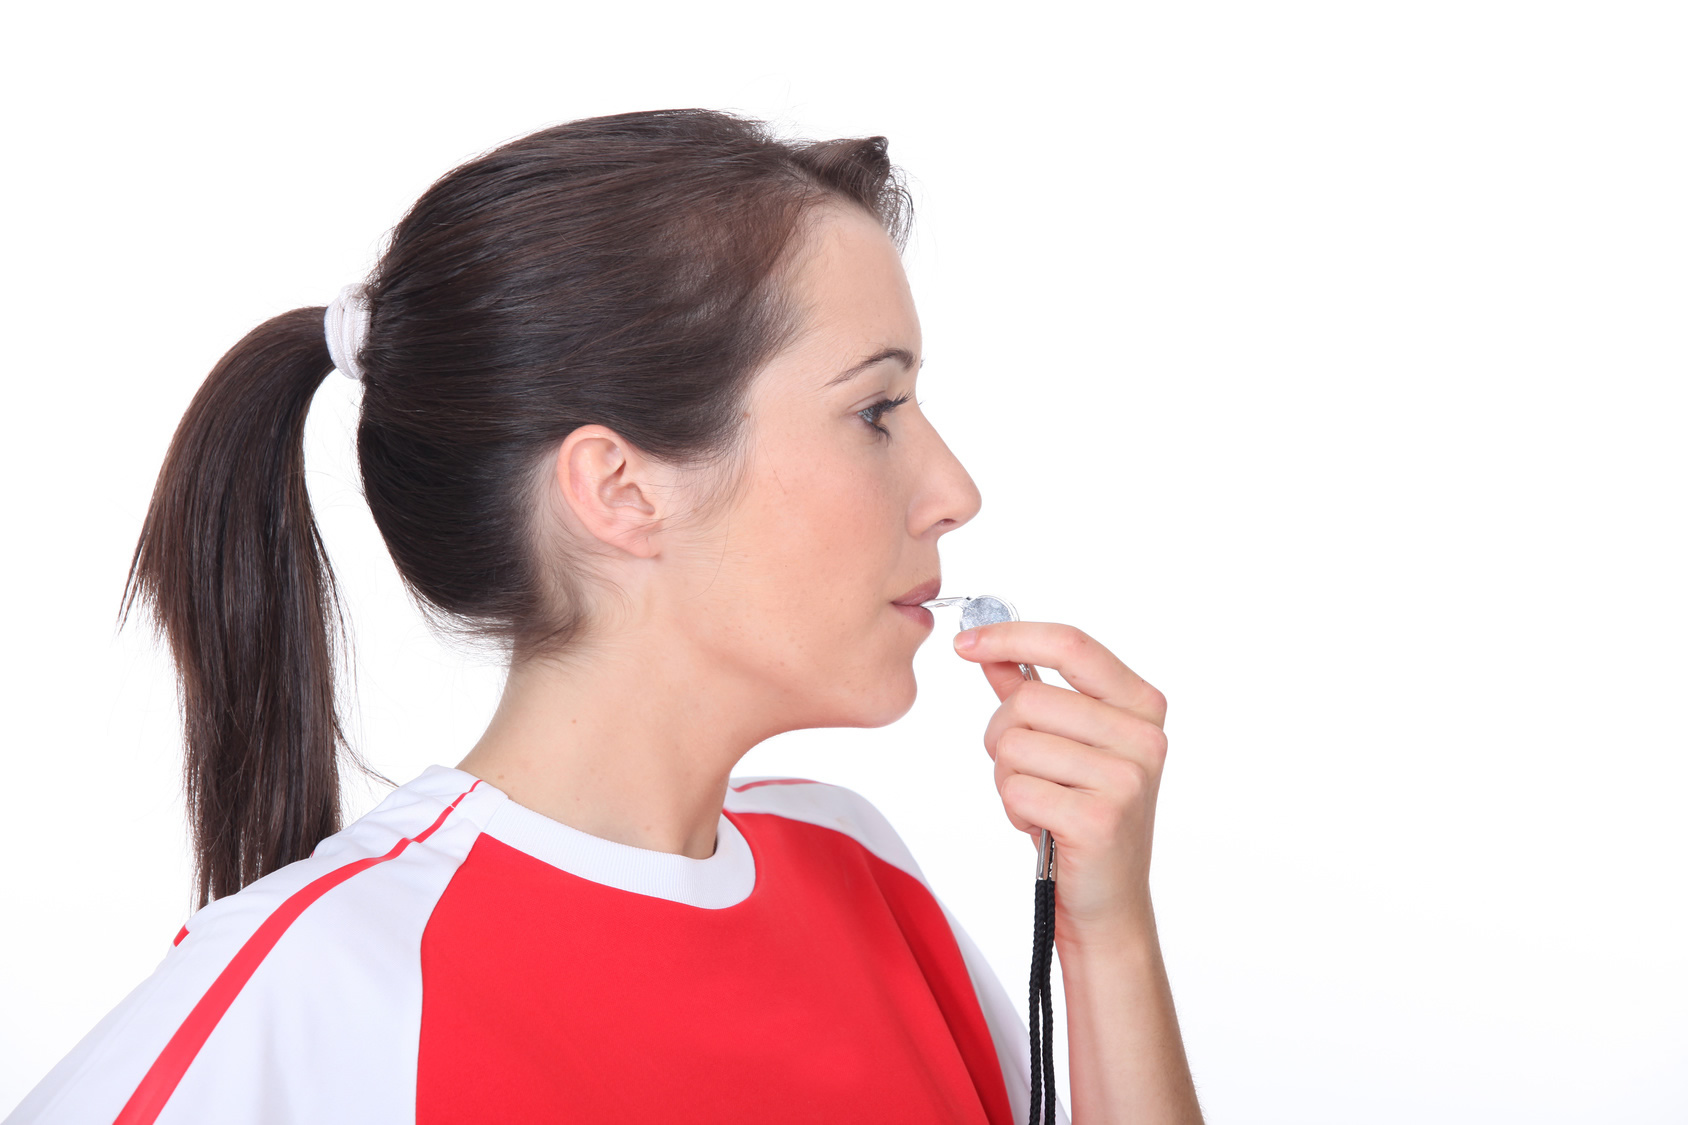 Female coach whistling.